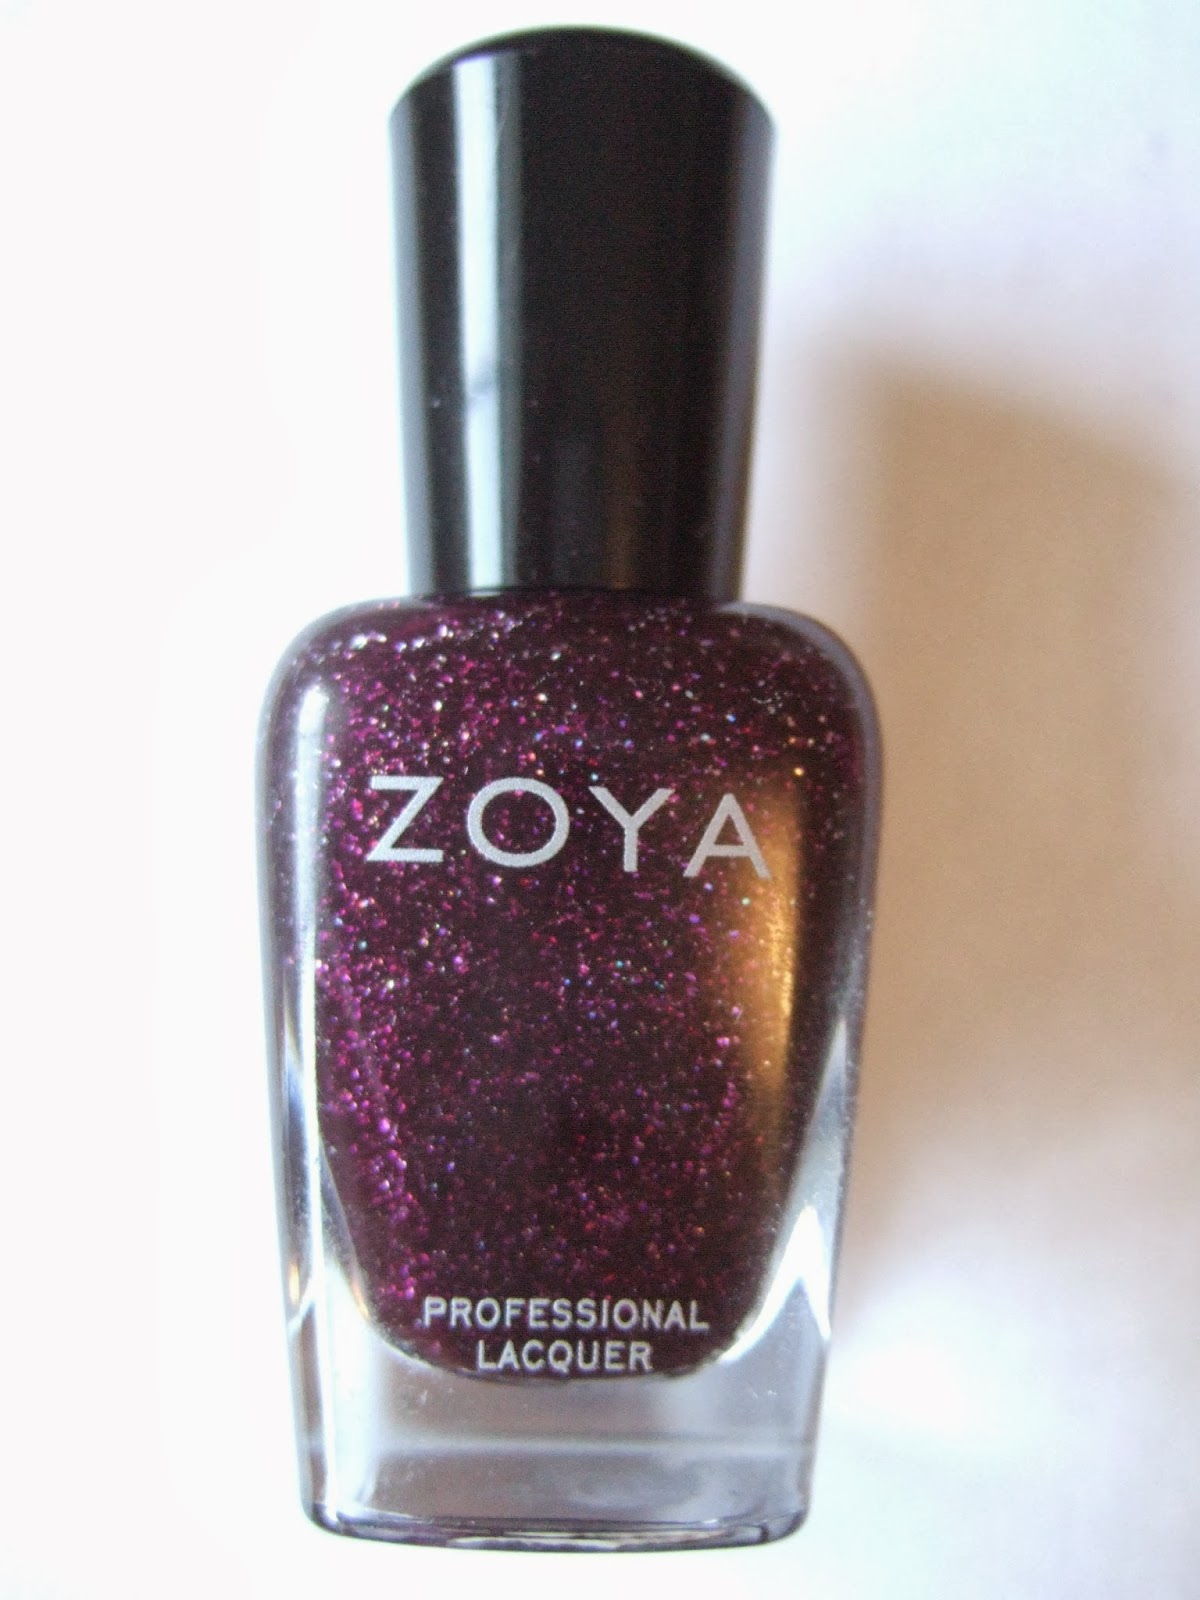 My First Zoya Polish:  Review